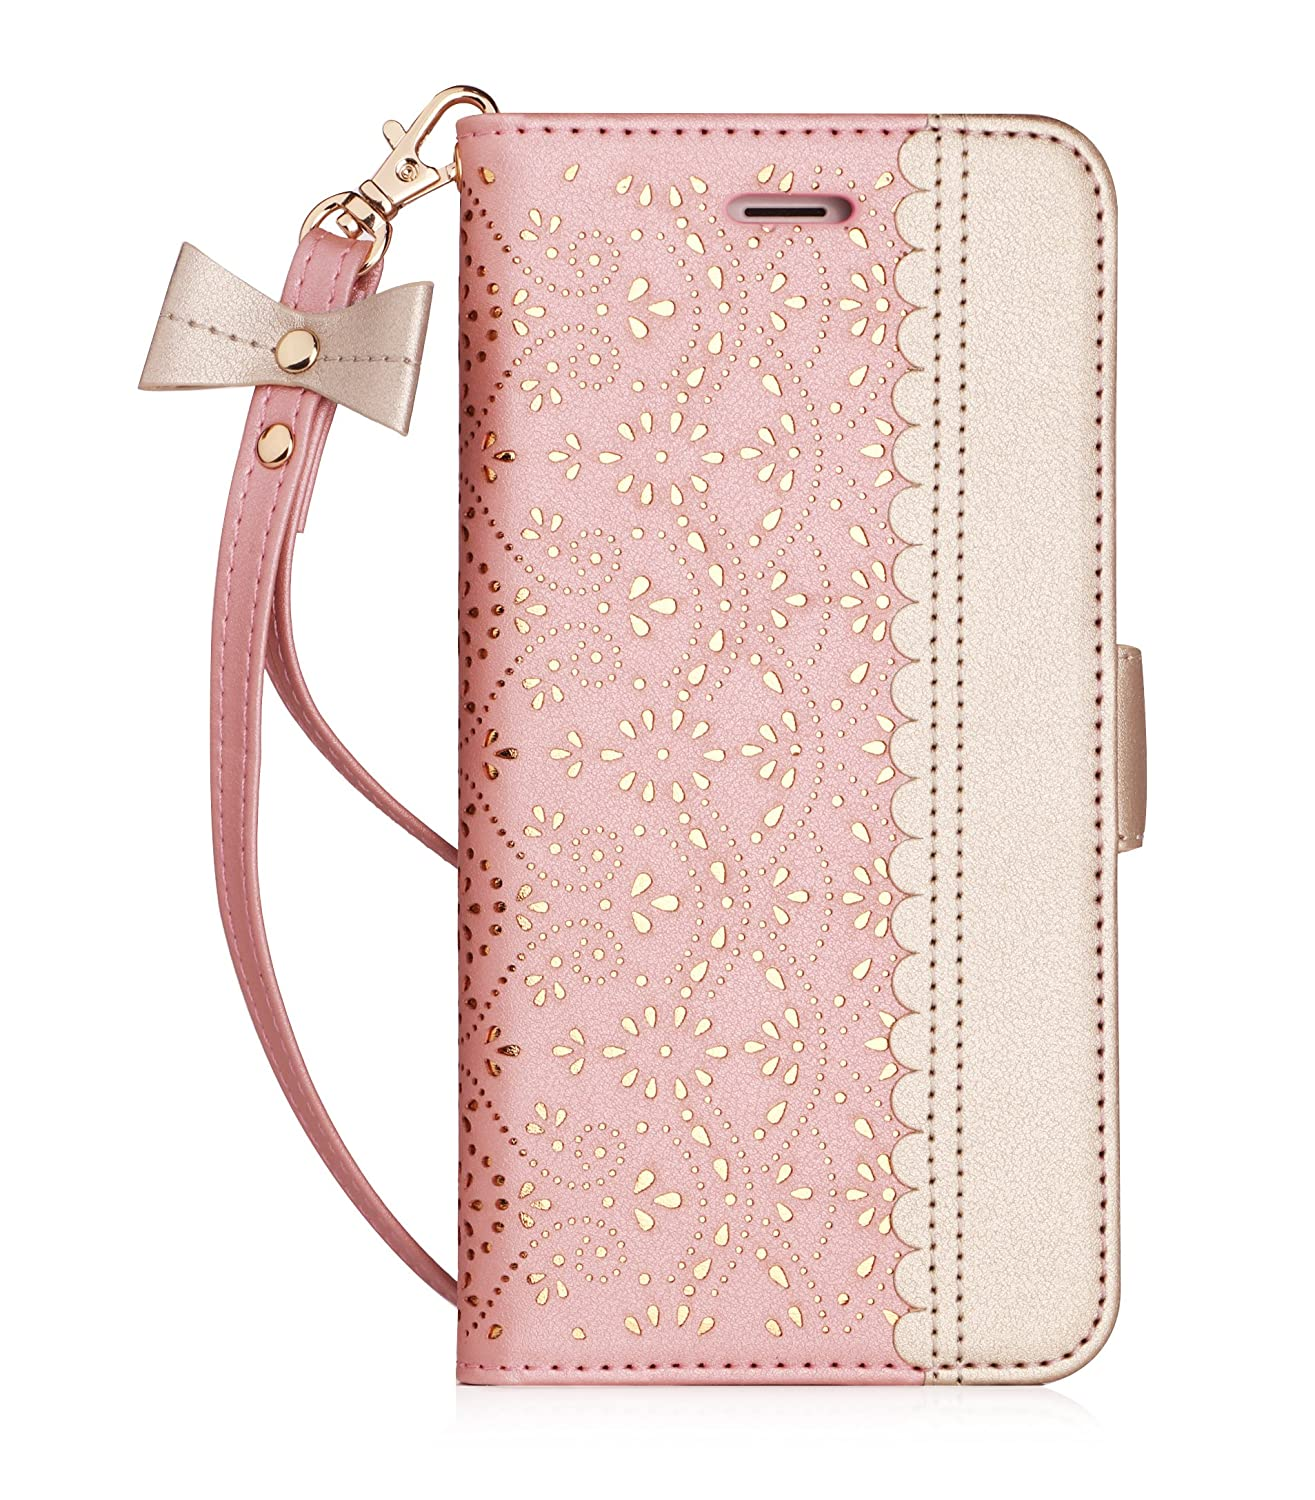 WWW iPhone 6S Case, iPhone 6 Case, [Luxurious Romantic Carved Flower] Leather Wallet Case with [Inside Makeup Mirror] and [Kickstand Feature] for Apple iPhone 6/6S Rose Gold